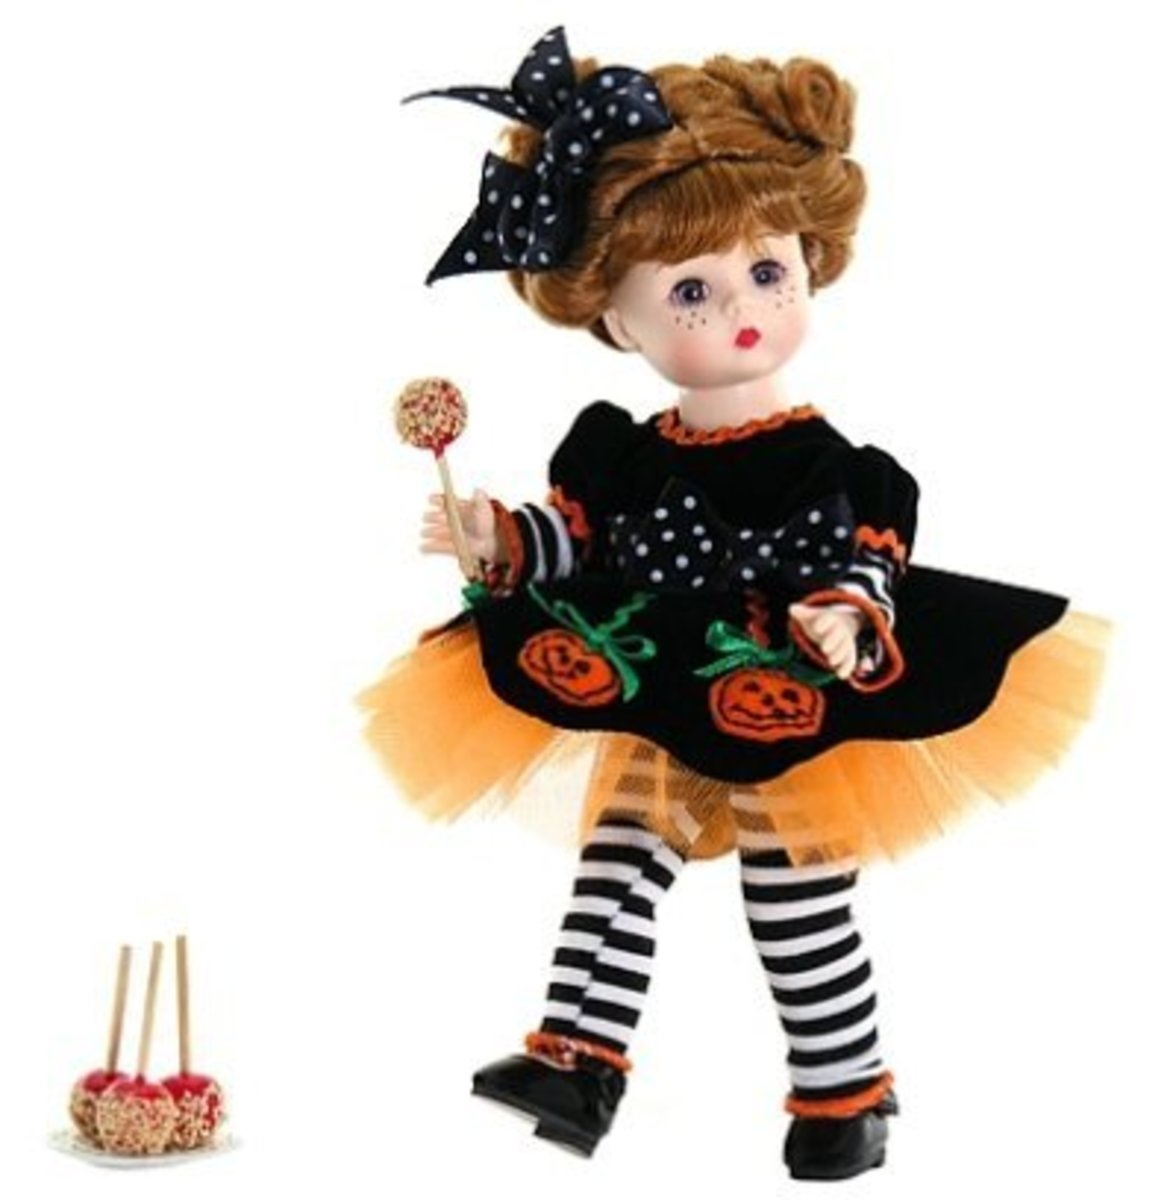 Madame Alexander Halloween Doll in Black and Orange Dress with Pumpkins and Black and White Striped Tights and Taffy Apples